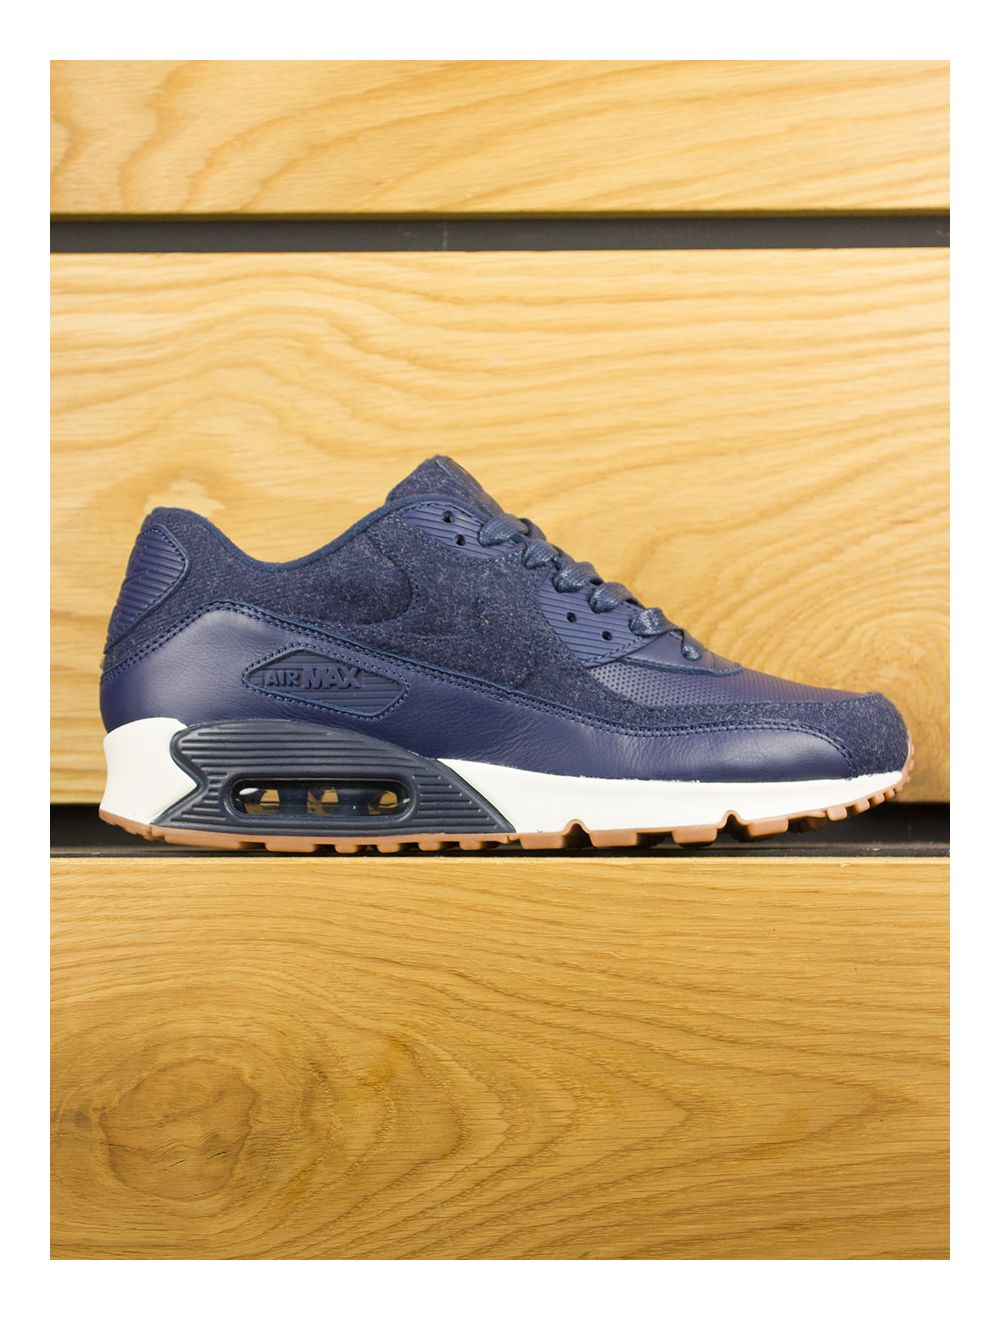 Nike Air Max 90 Premium Midnight Navy